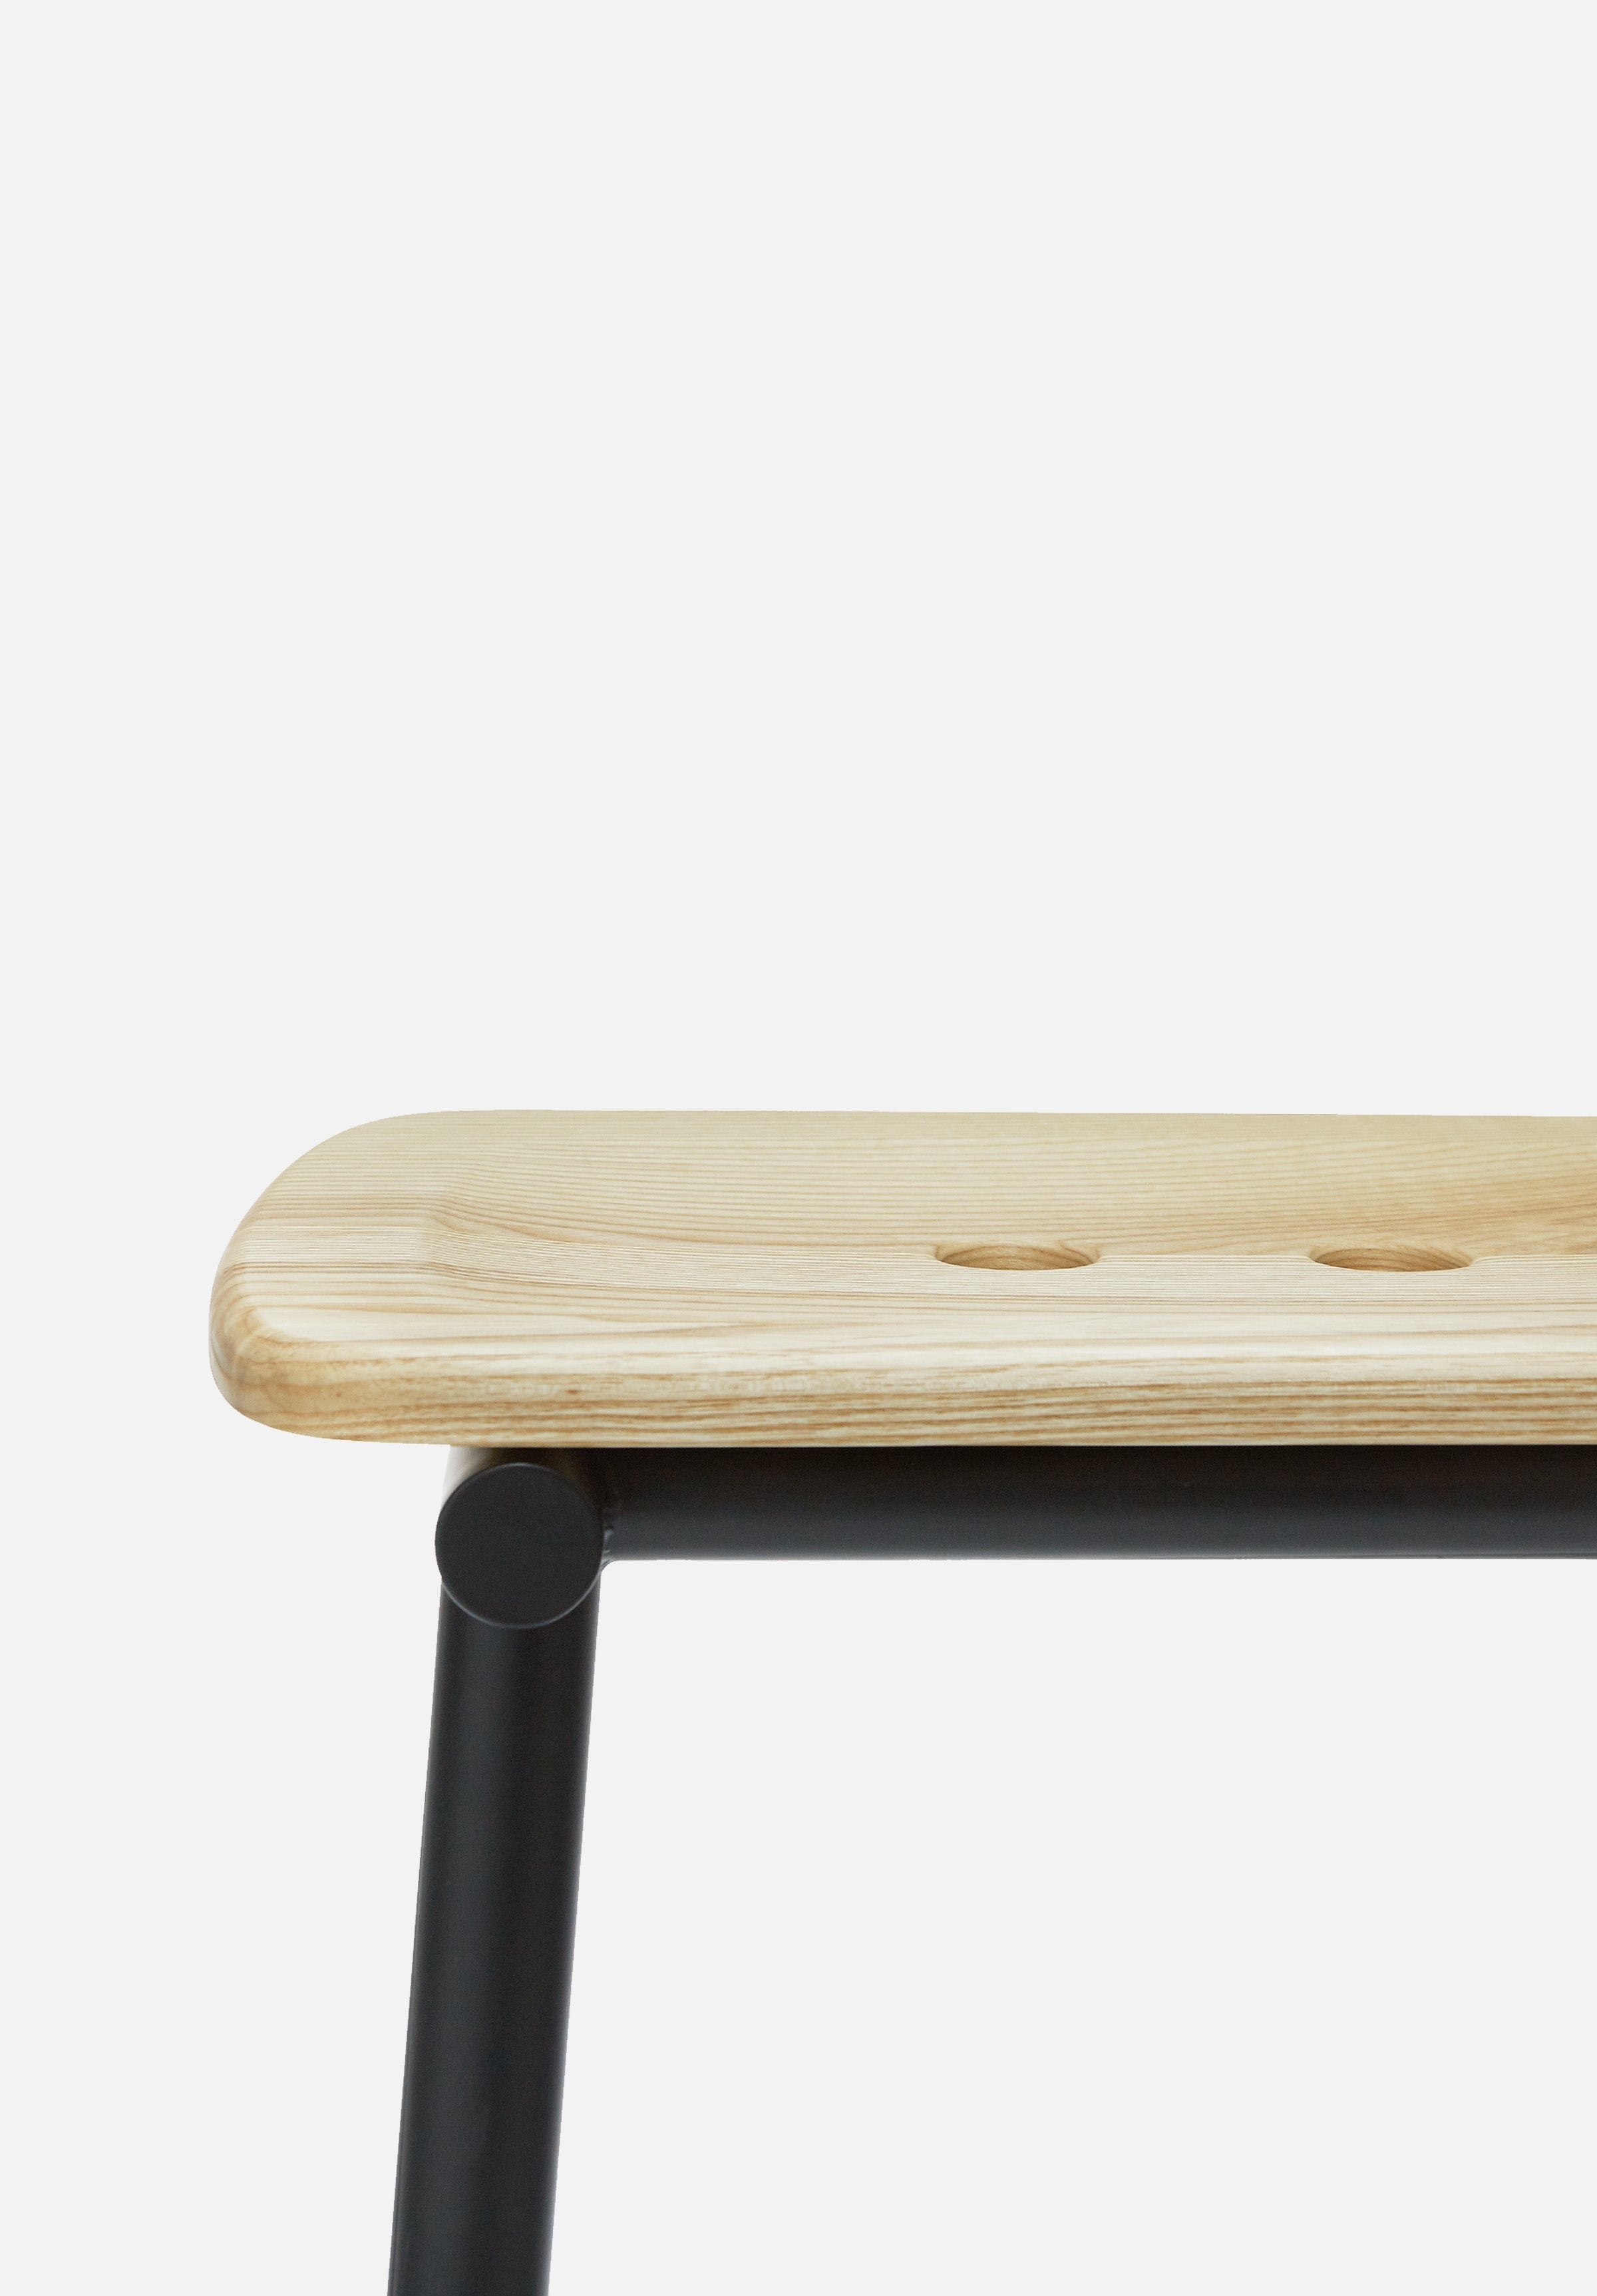 Tubby Stool-Faye Toogood-Please Wait to be Seated-Natural Ash-Average